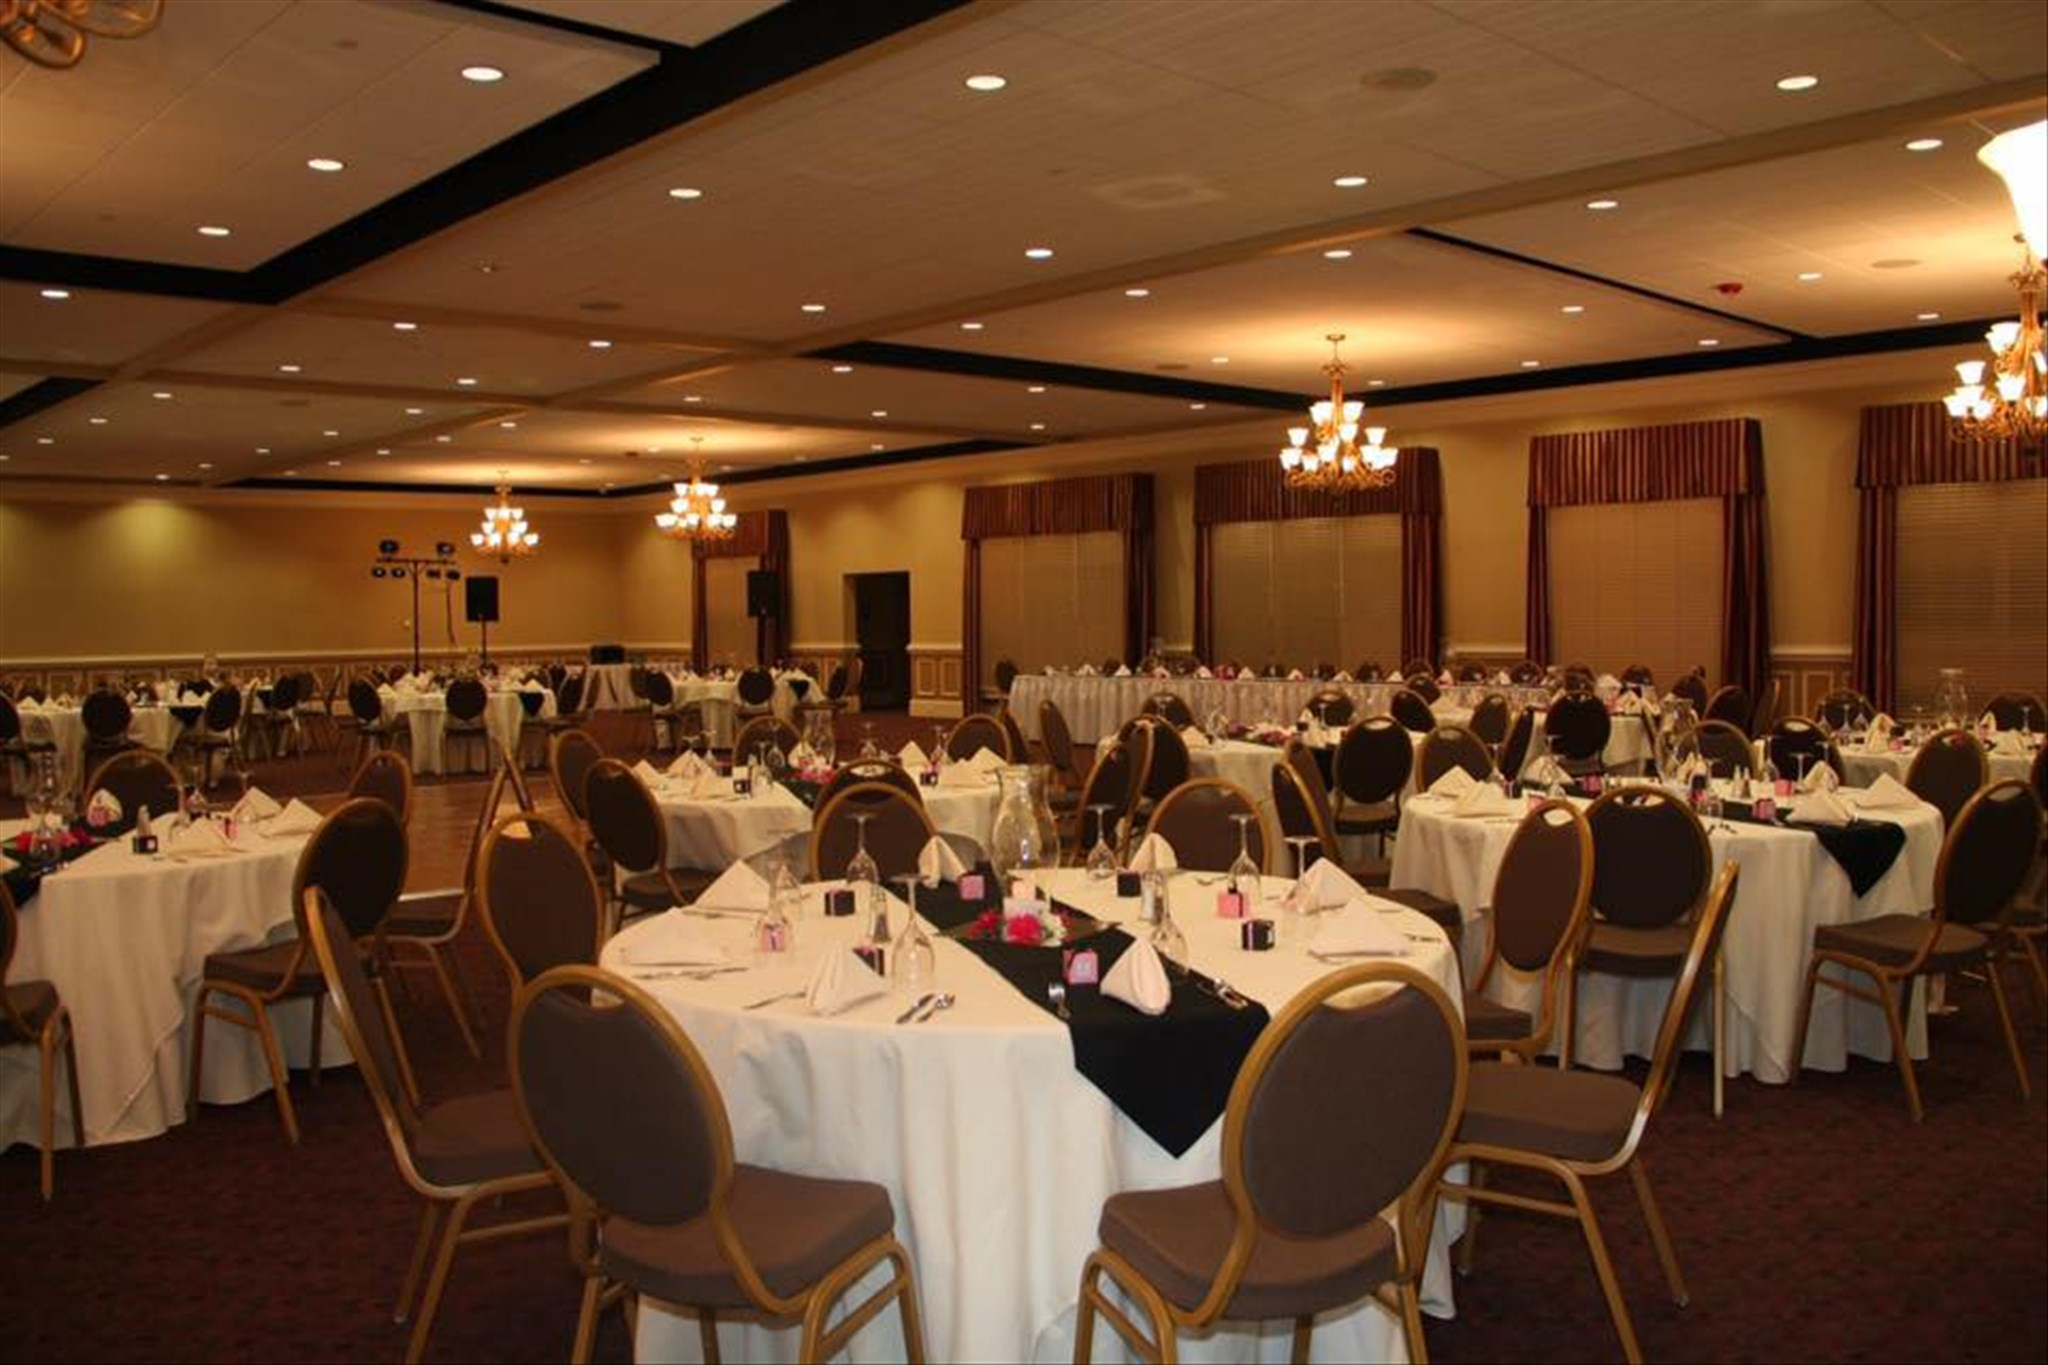 Banquet Hall Rental - Townsend fire company - Delaware